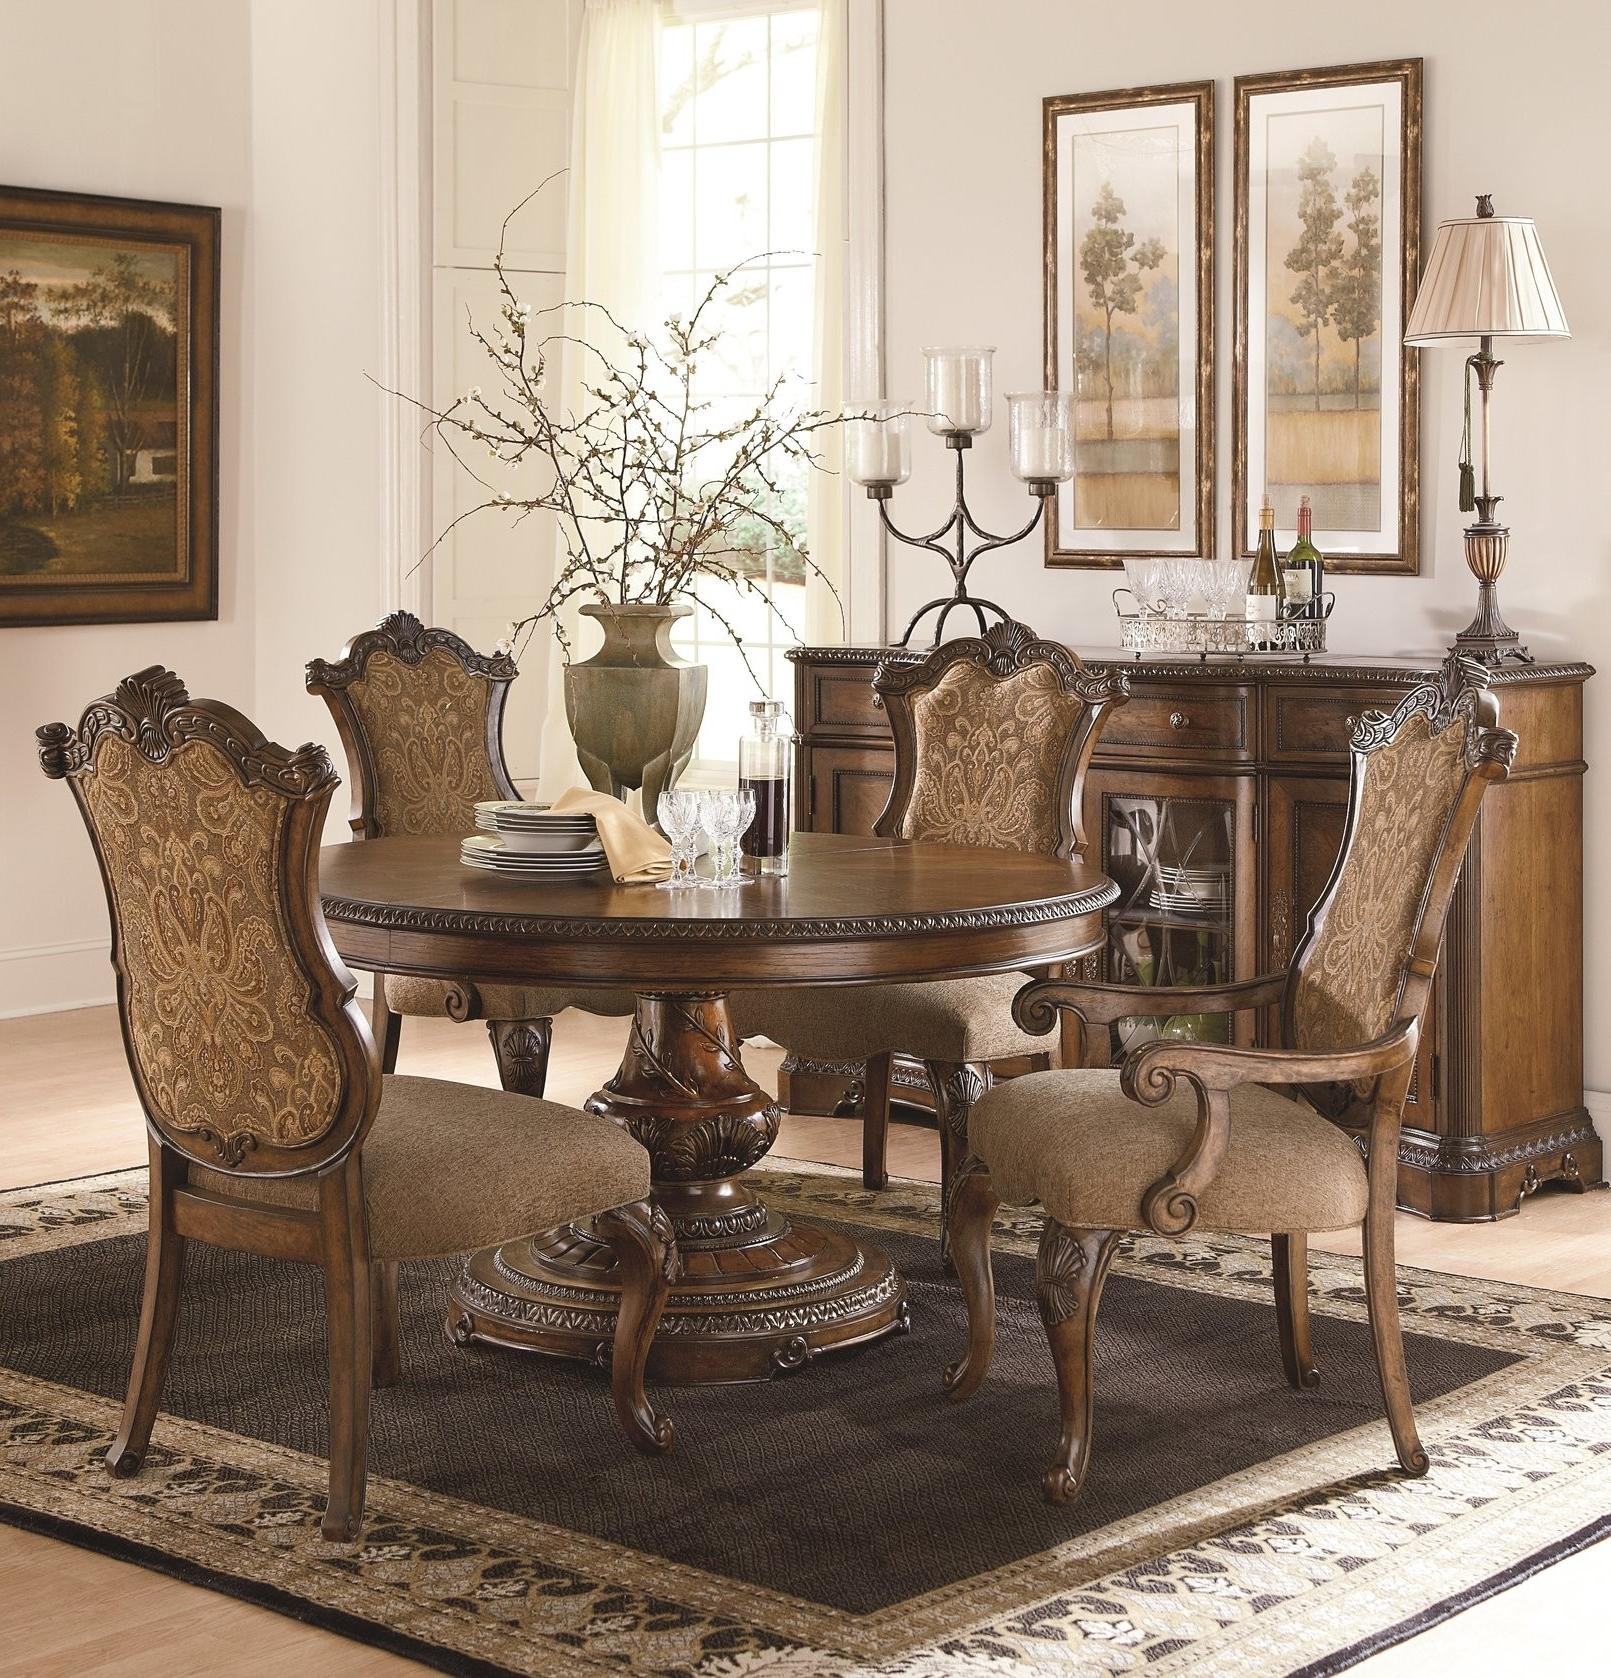 Well Liked Jaxon 6 Piece Rectangle Dining Sets With Bench & Uph Chairs For Dining Table Upholstered Chairs Unique The Pemberleigh Round Table (View 25 of 25)